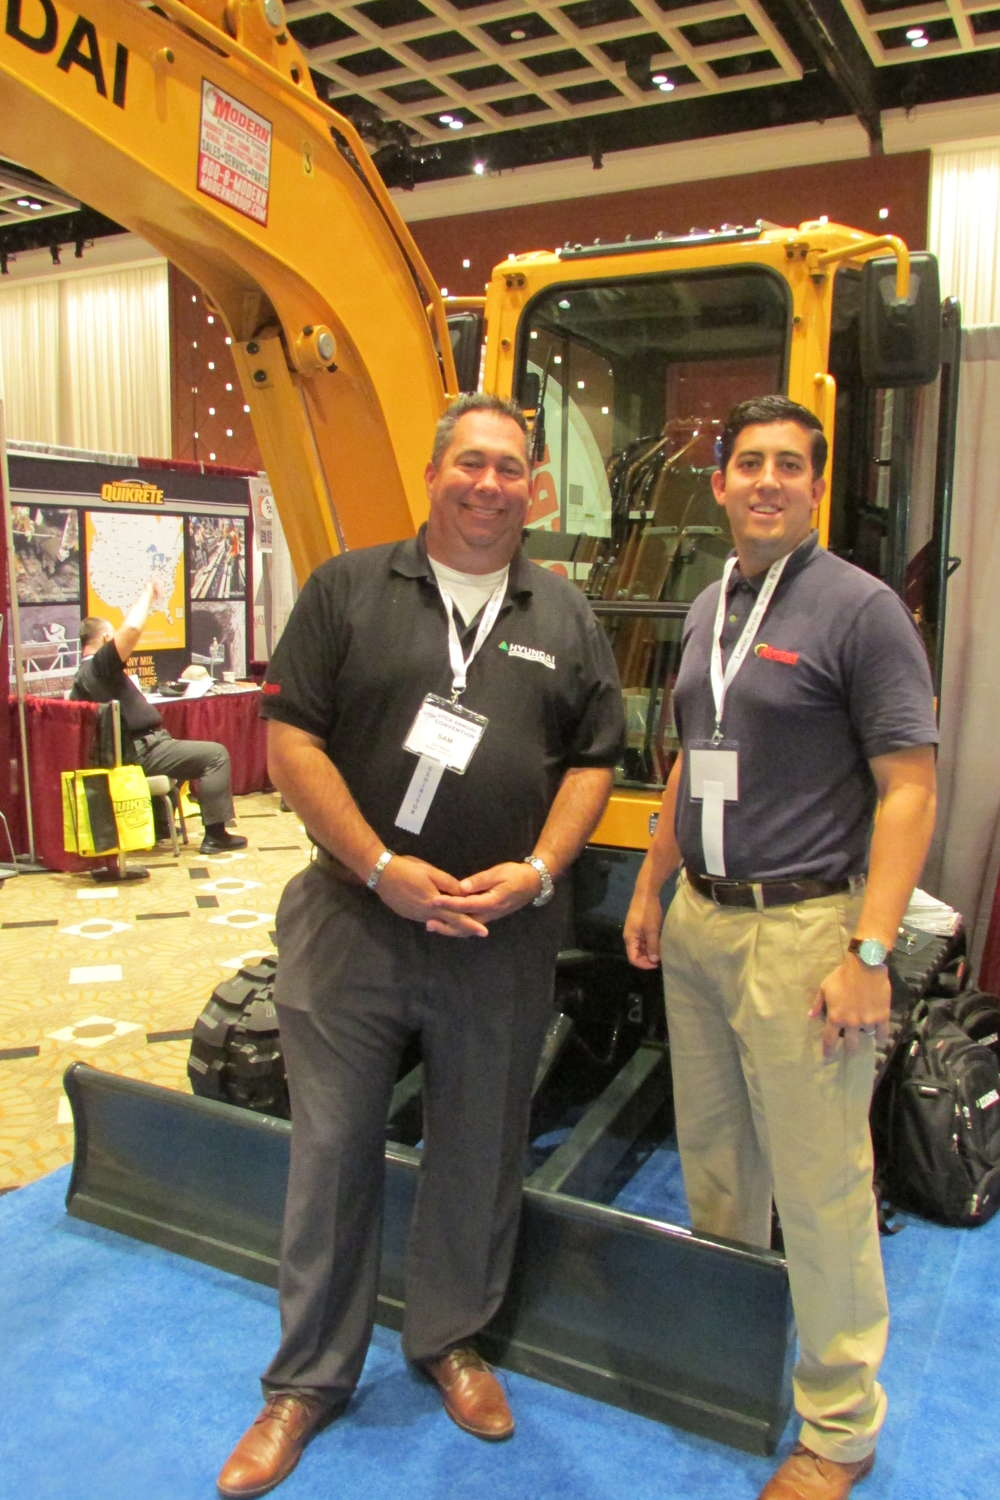 Proudly standing in front of a Hyundai excavator are Sam Maury (L), general manager of heavy construction equipment, and Ron Dortone Jr., sales representative, construction equipment division.